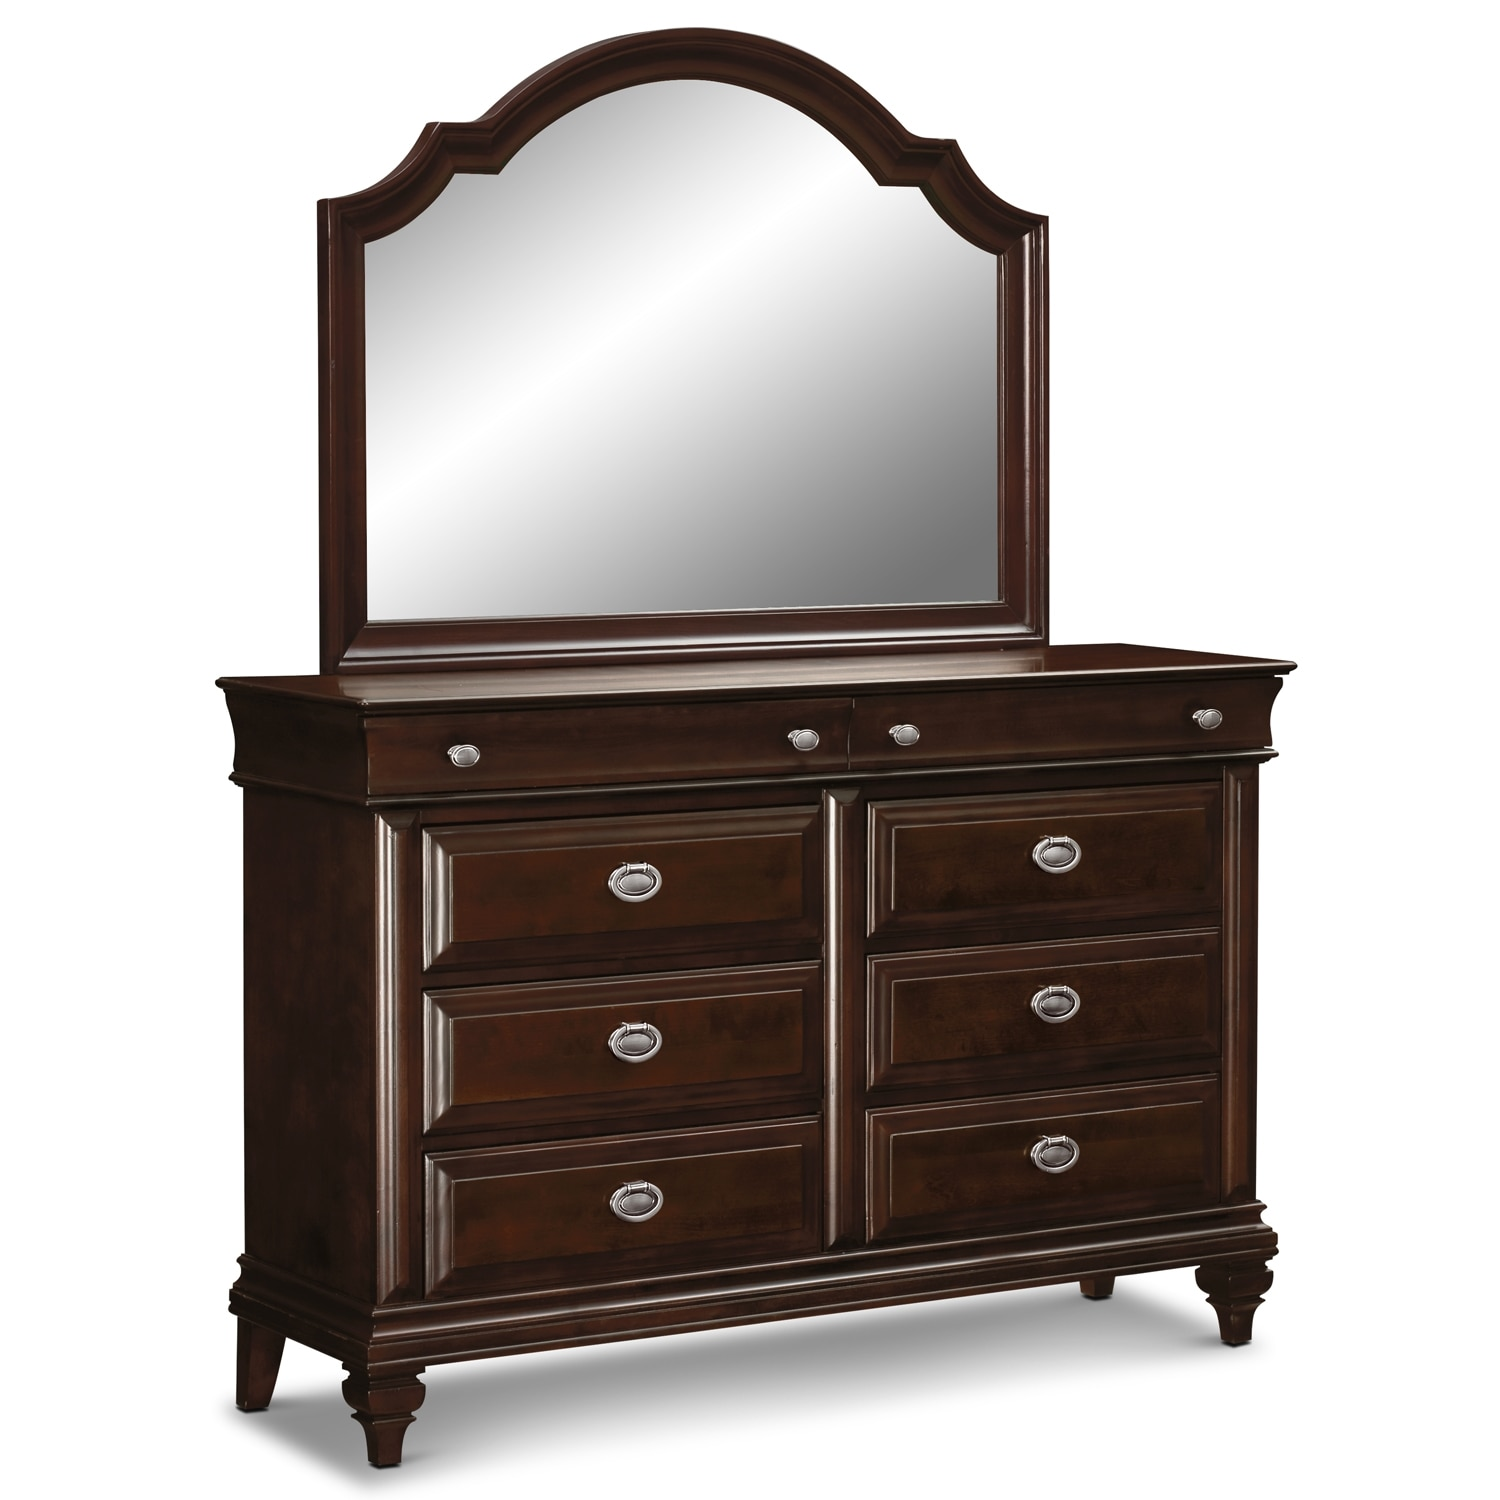 Bedroom Furniture - Manhattan Dresser & Mirror